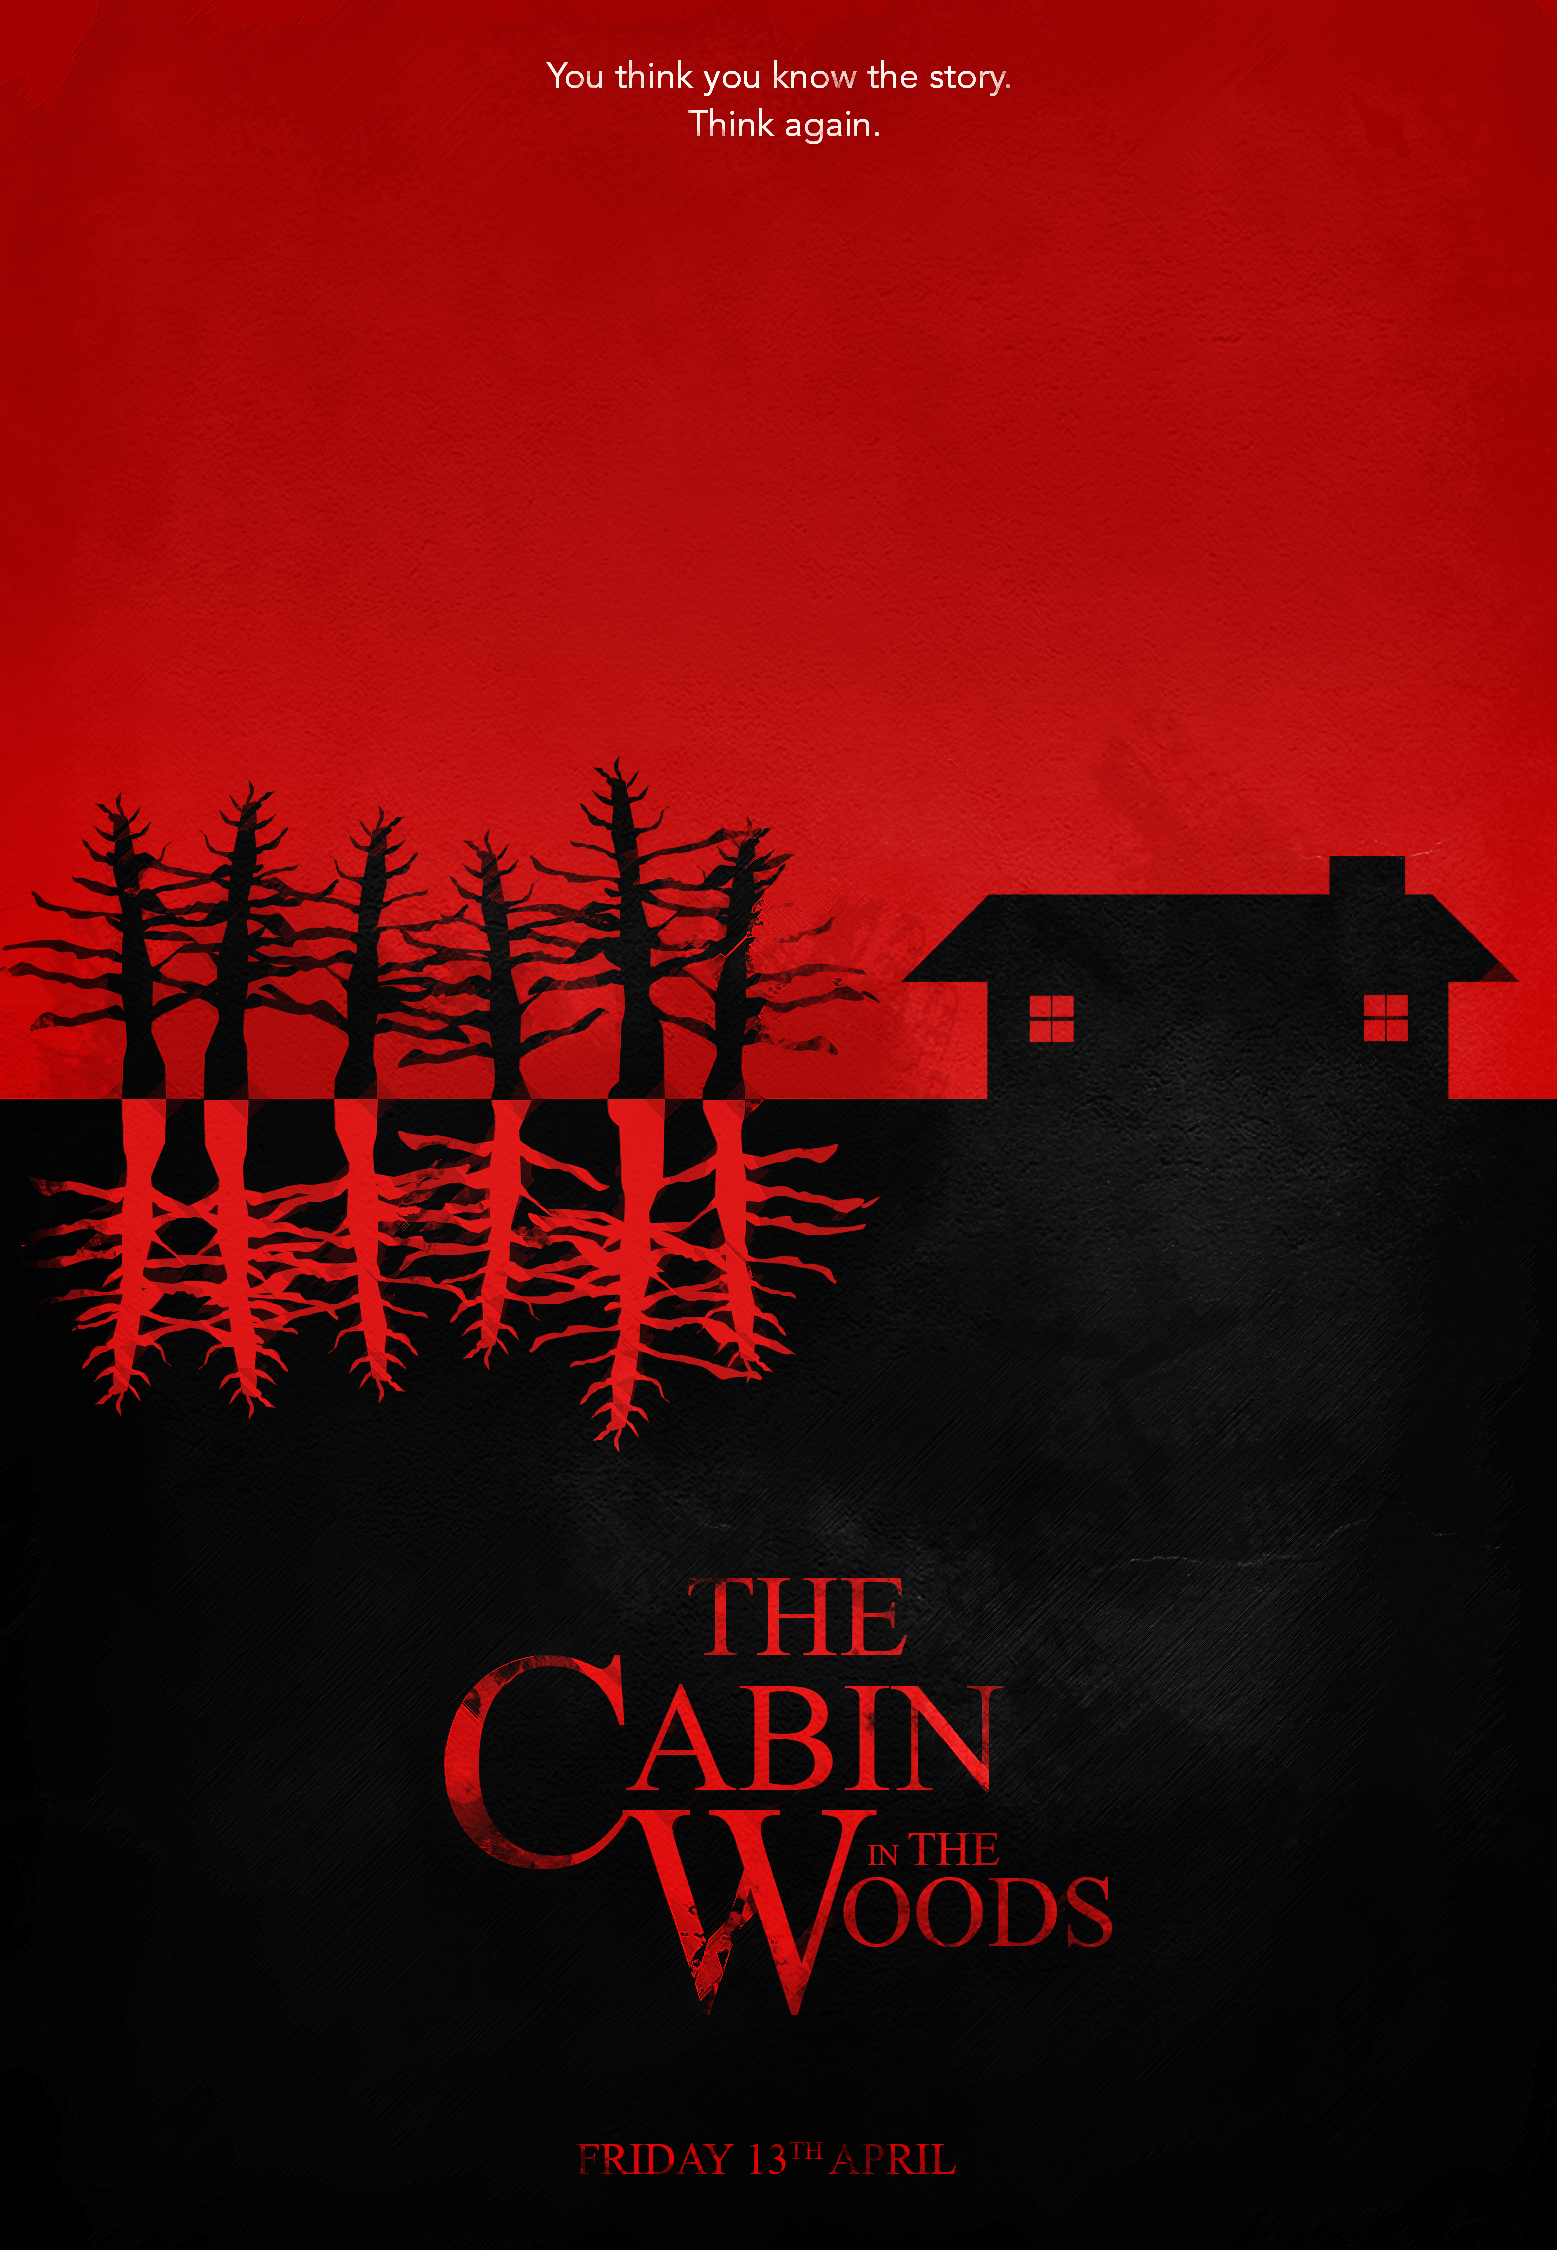 The Cabin In The Woods Minimalist By Jswoodhams On